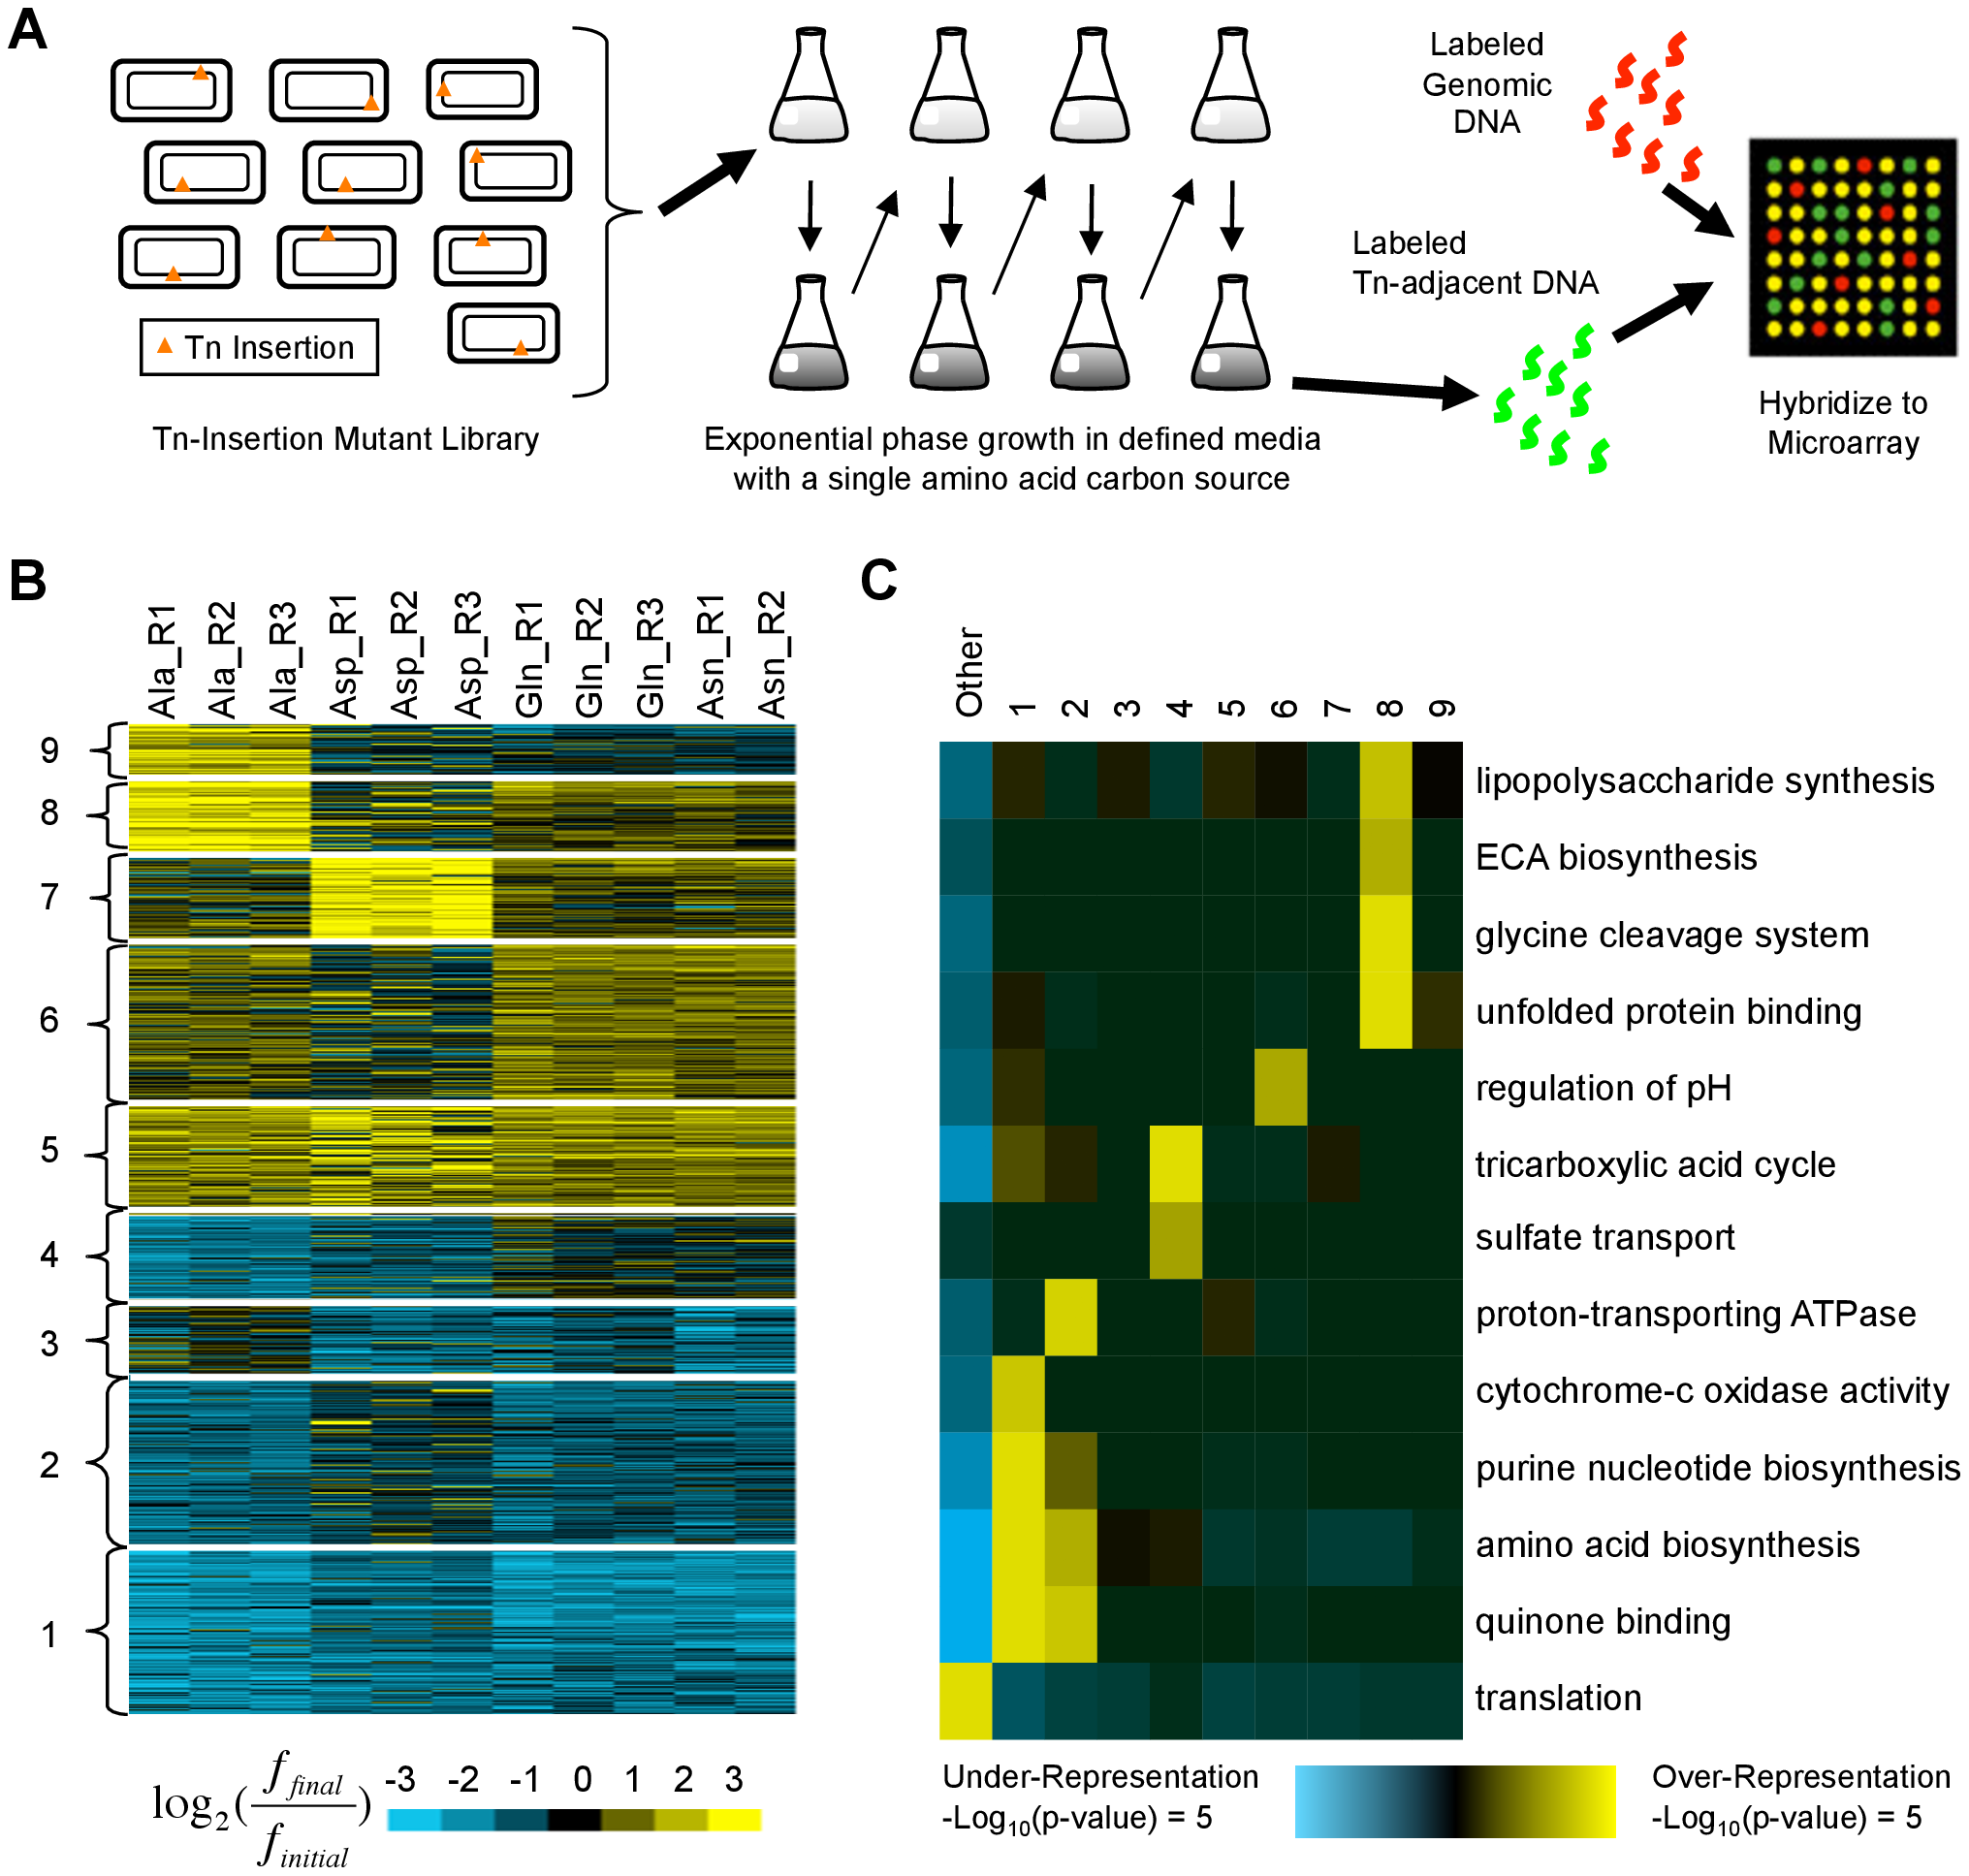 Identification and characterization of transposon insertion locations that alter fitness in single amino acid media.